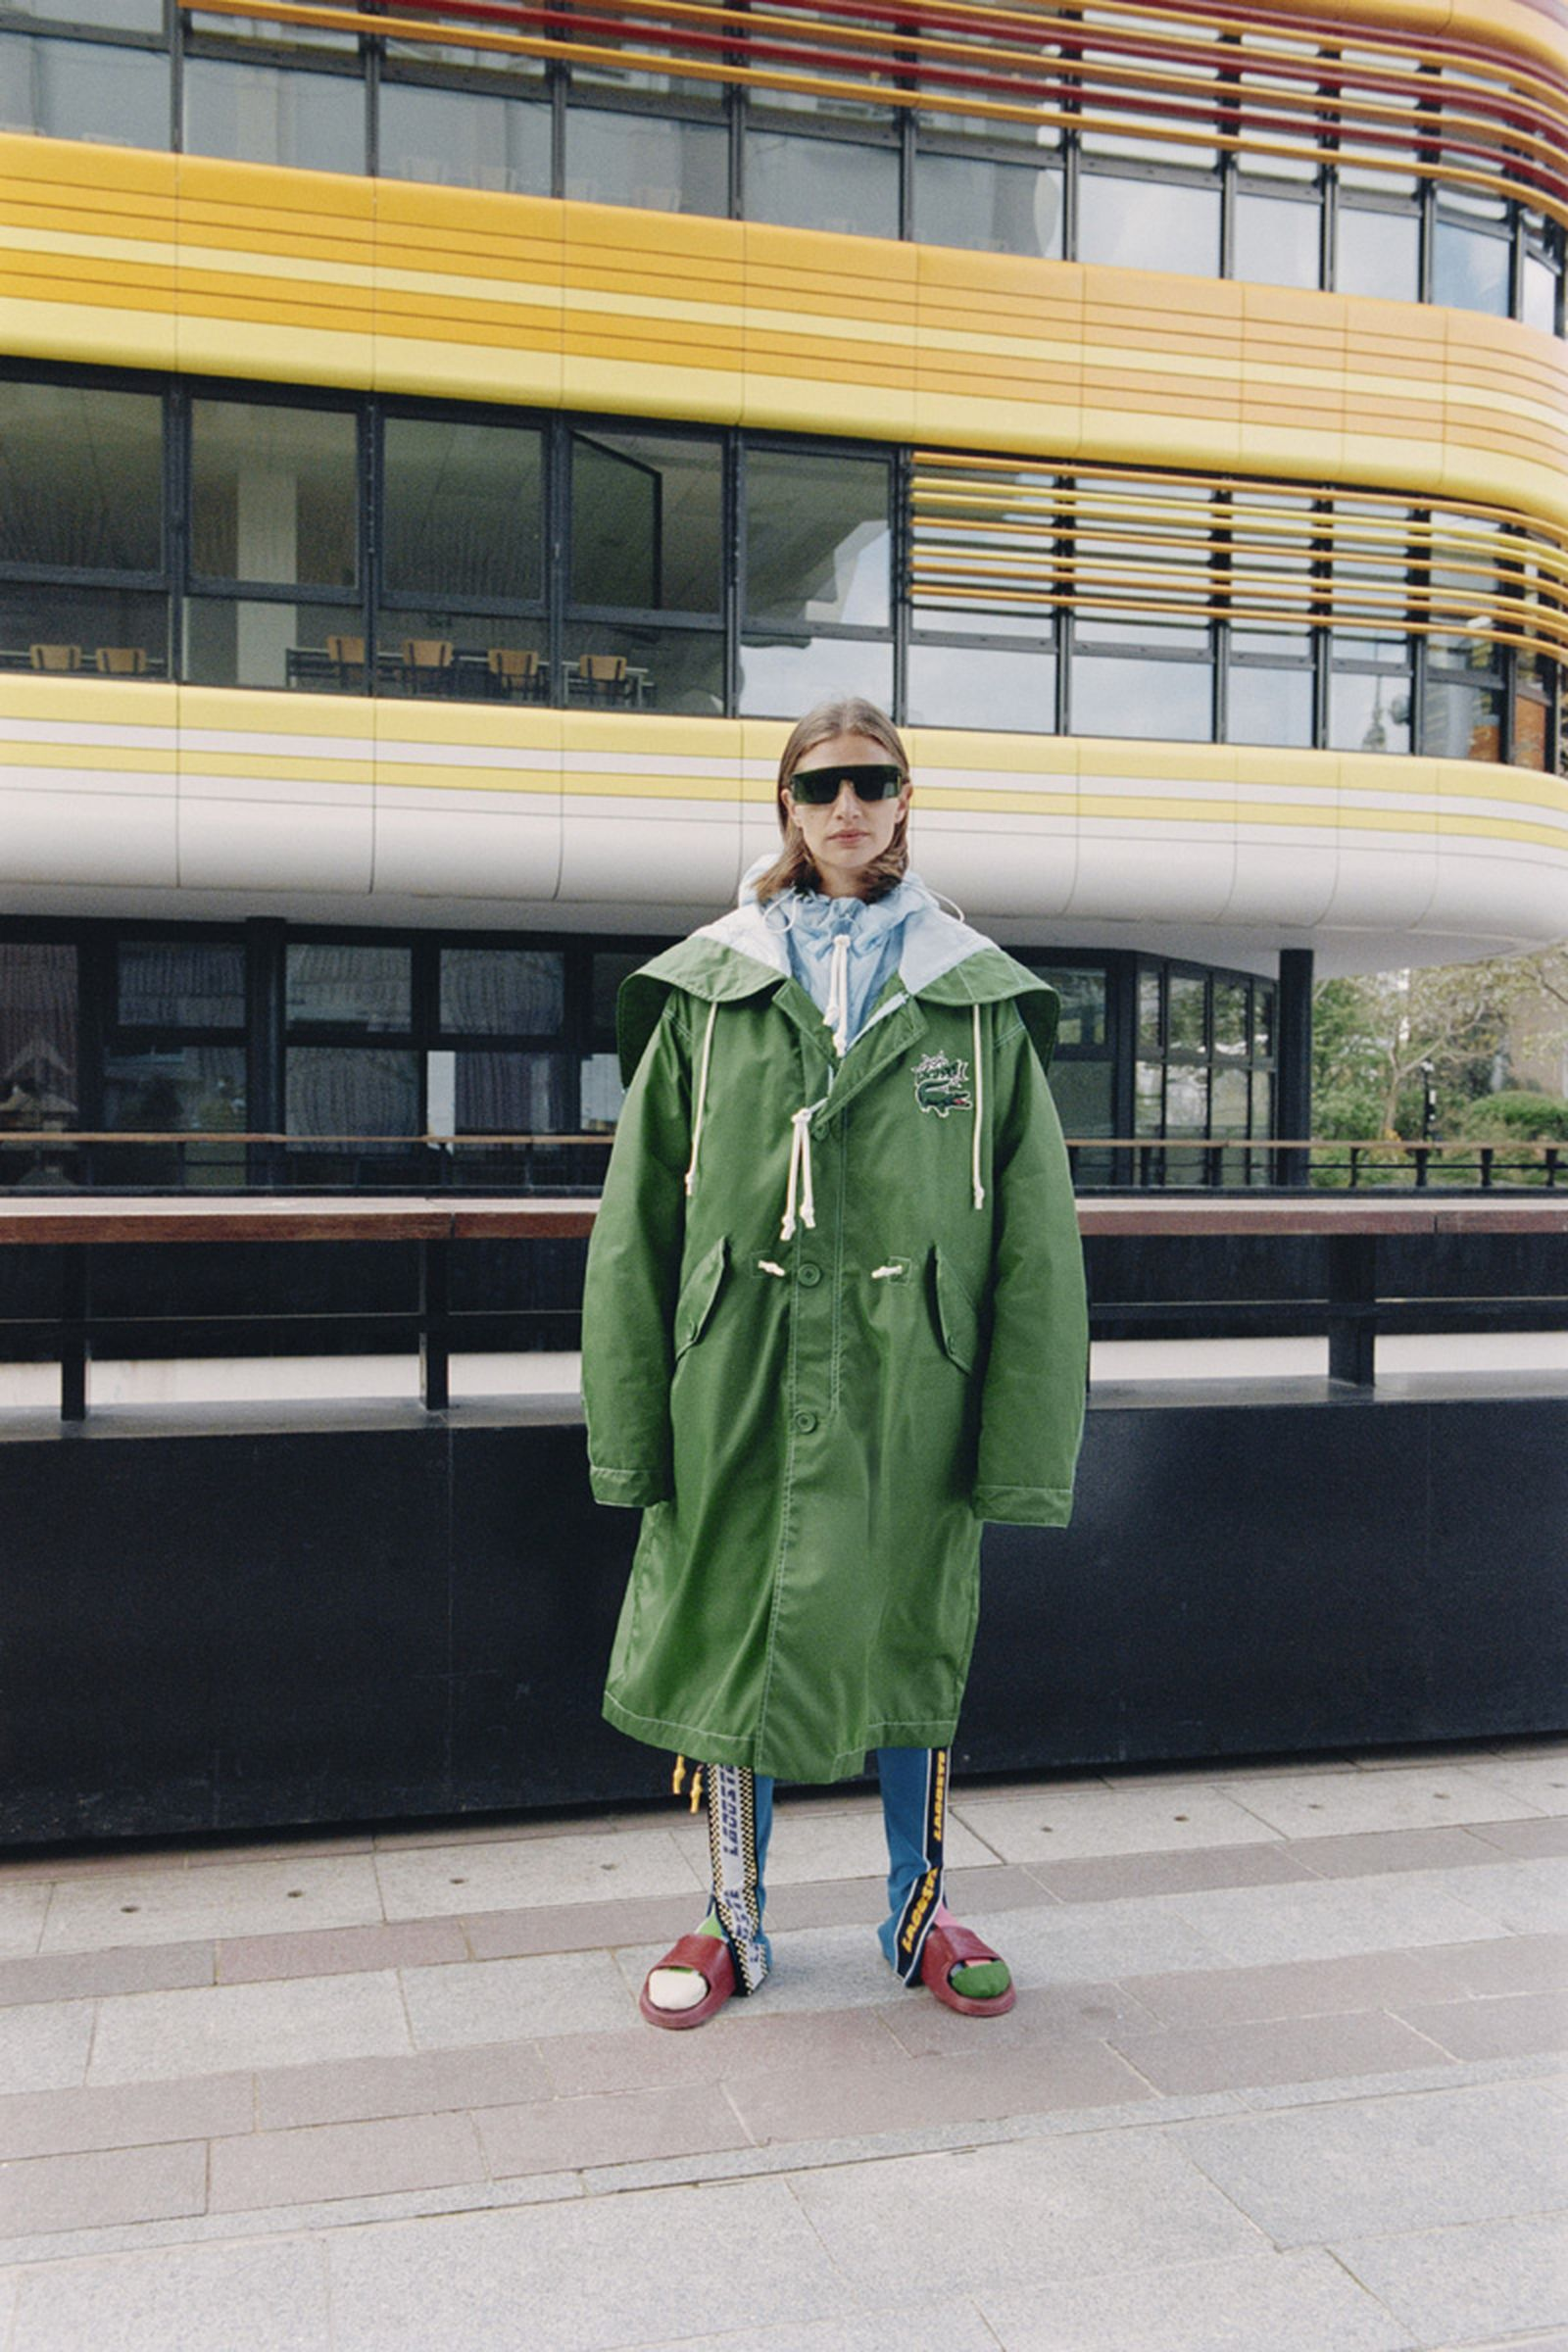 lacoste-fall-winter-2021-collection-lookbook-28